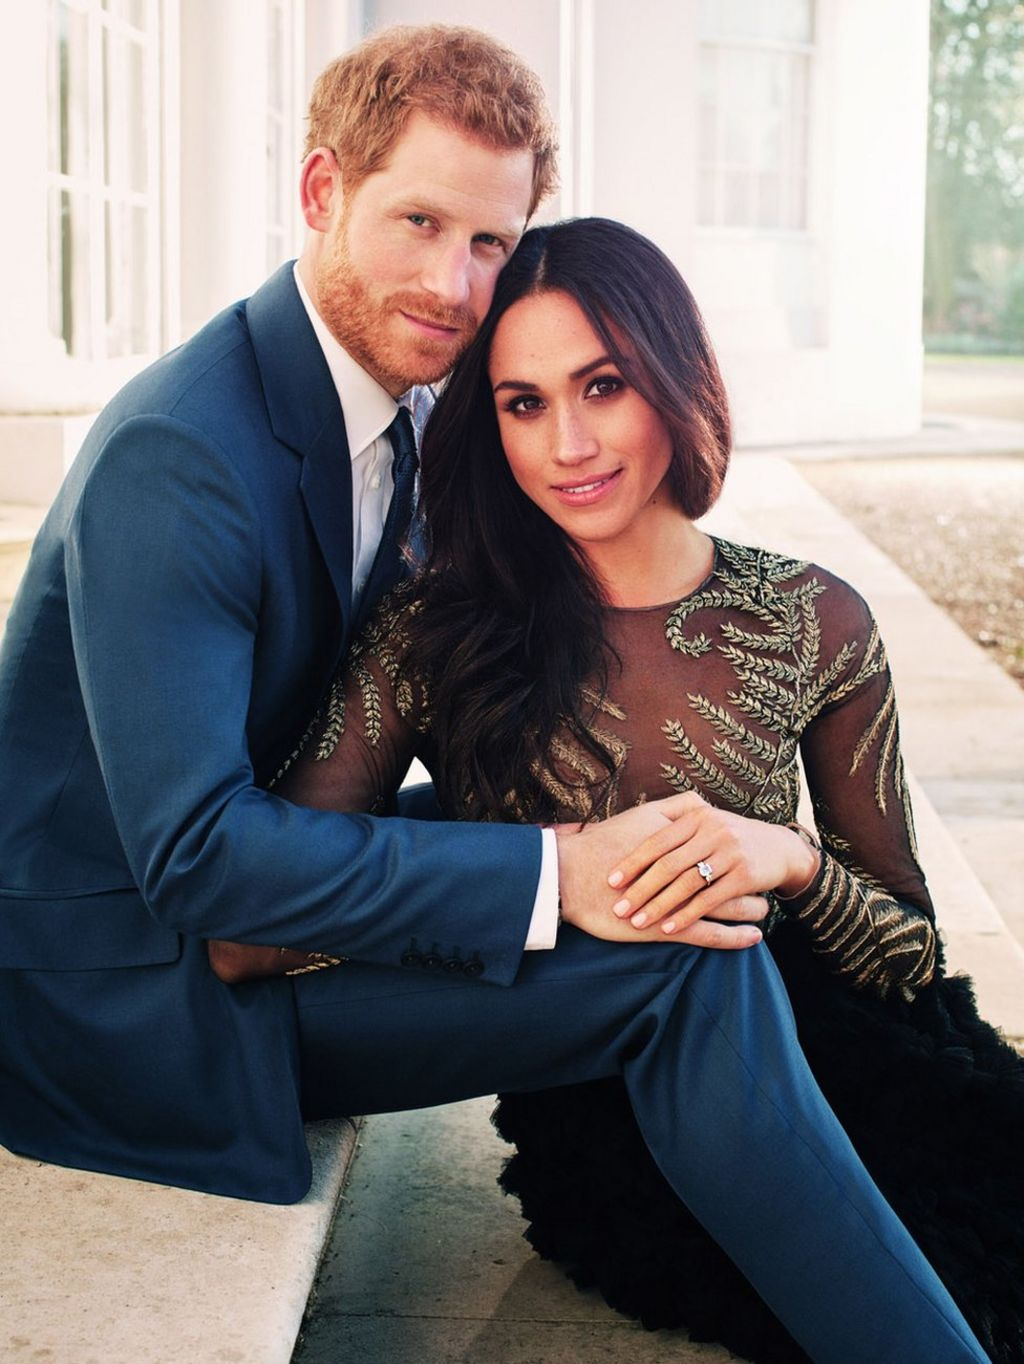 Prince Harry and Meghan Markle engagement photos released - BBC News